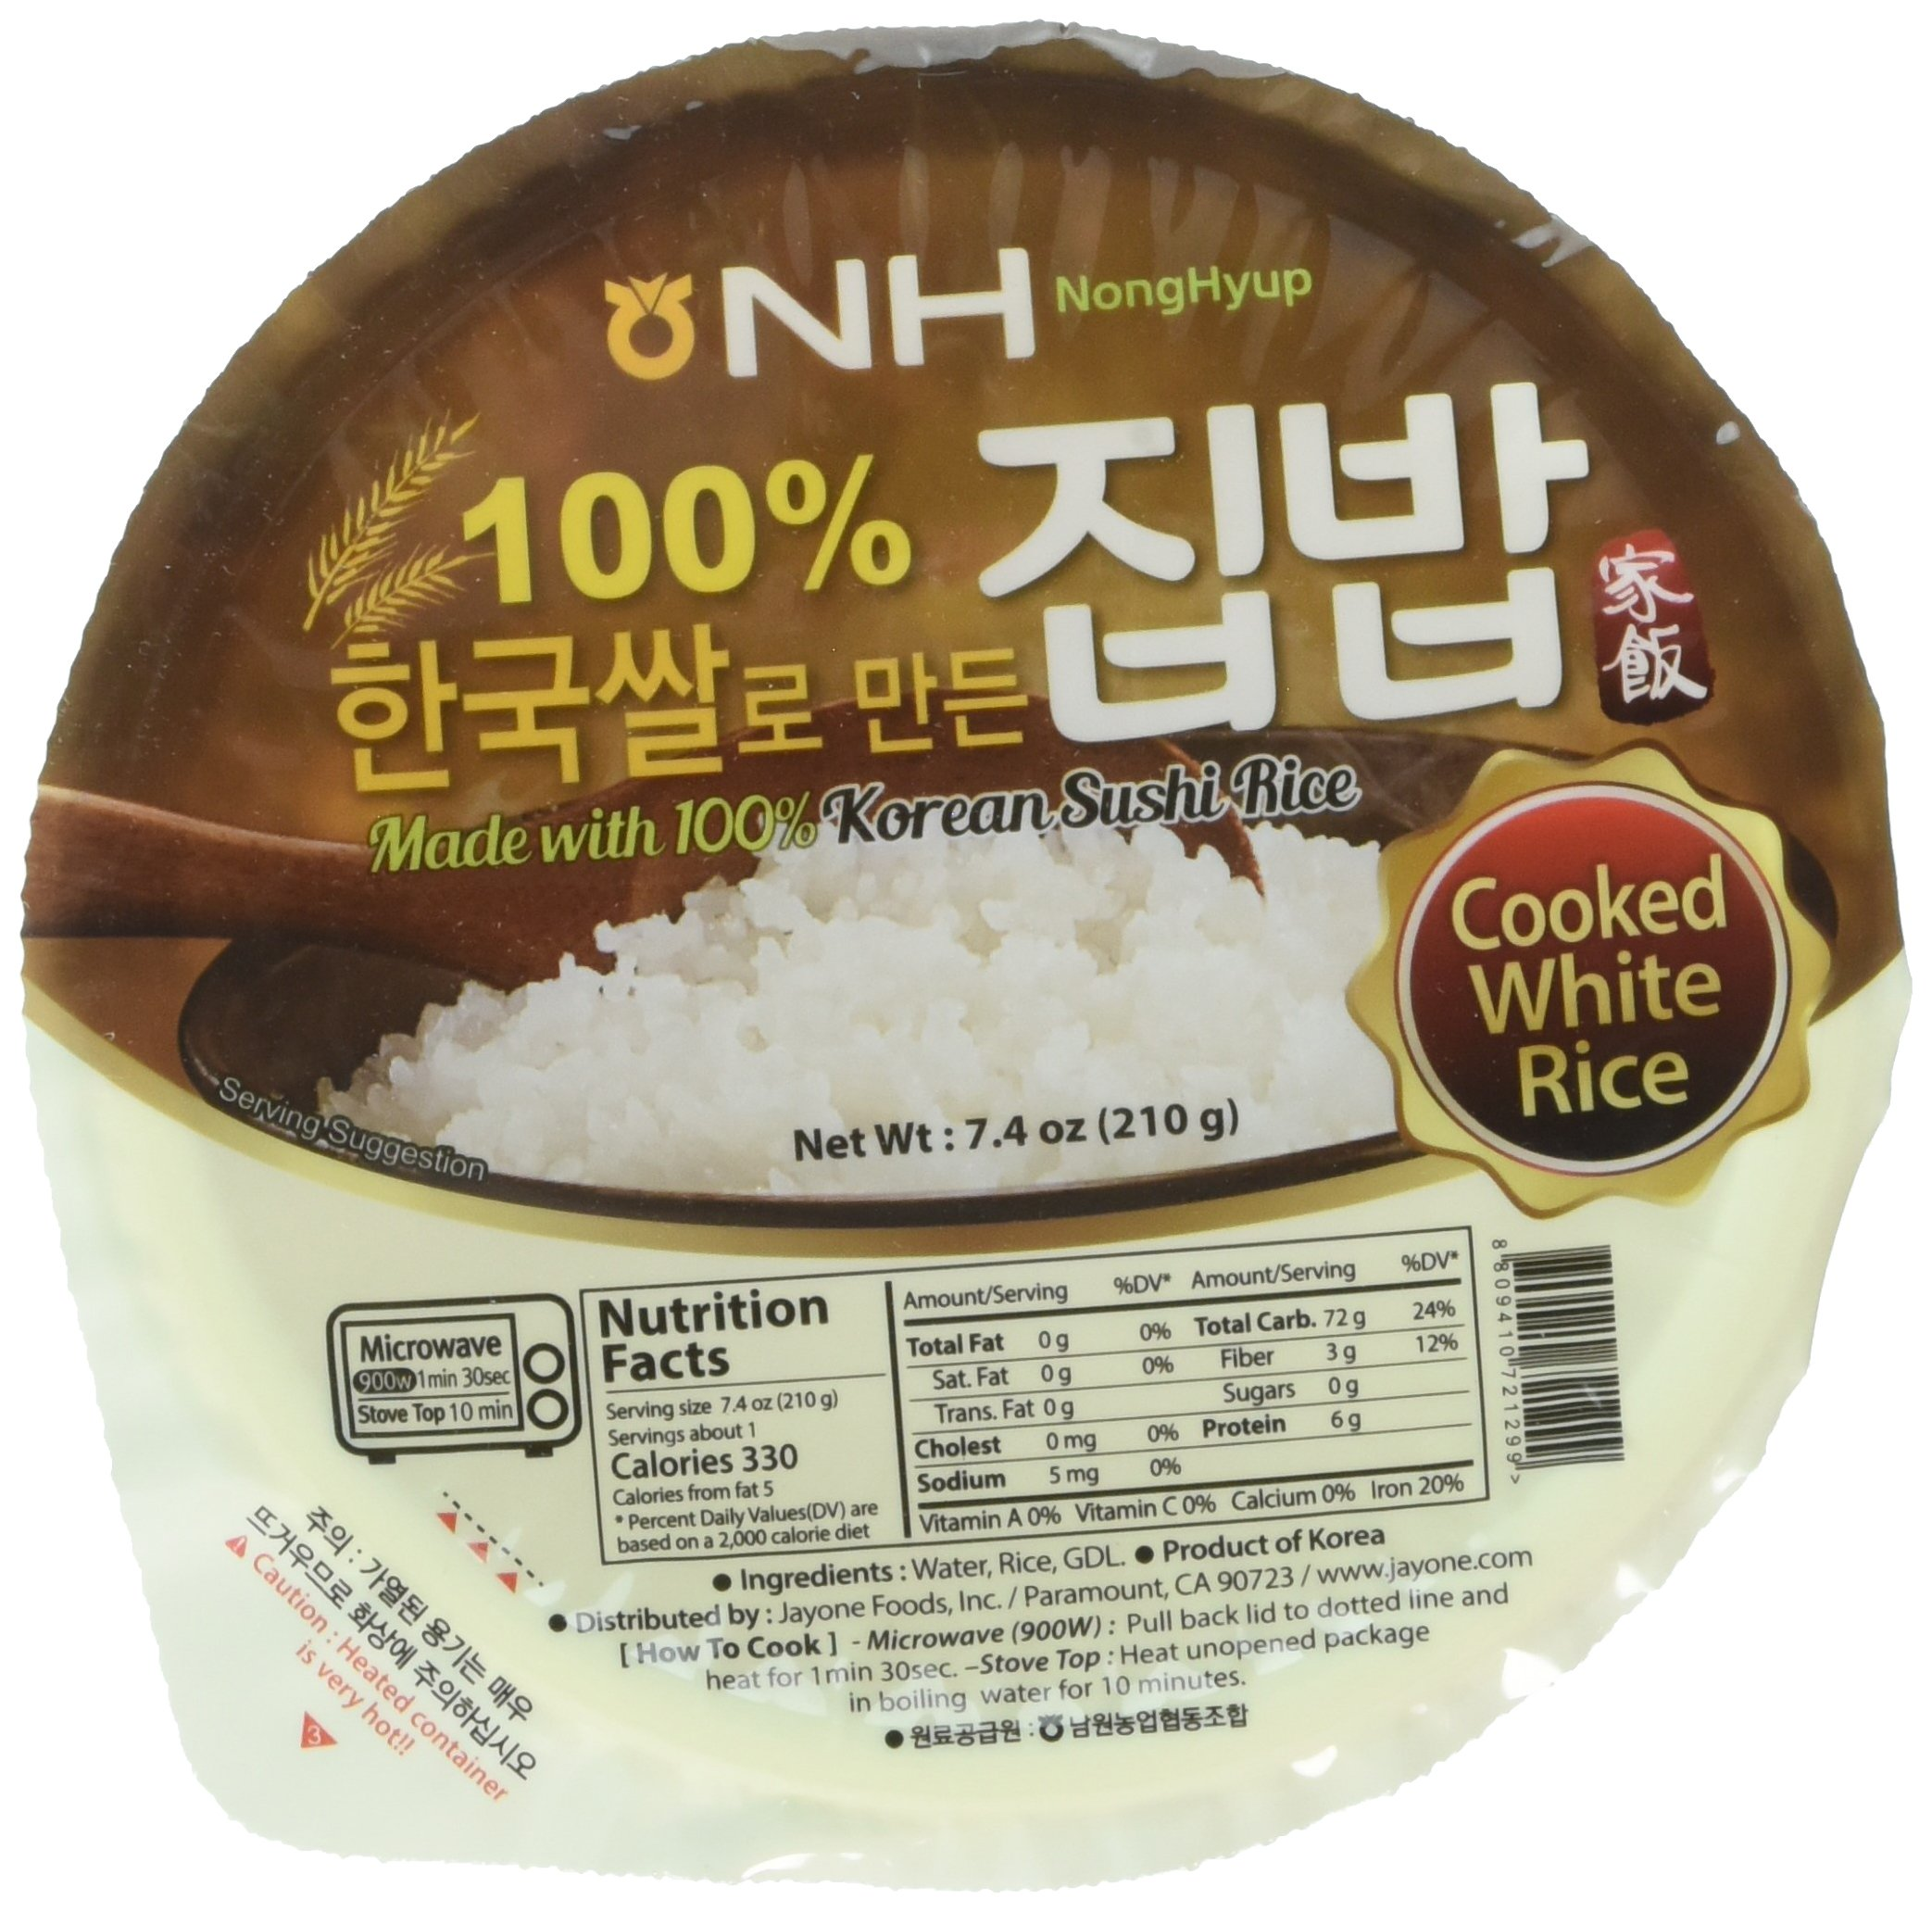 Jayone Microwaveable Fresh Cooked instant White Rice, 7.4 Oz, 12 Count (88.8 oz), Non GMO No Preservatives Gluten Free BPA Free